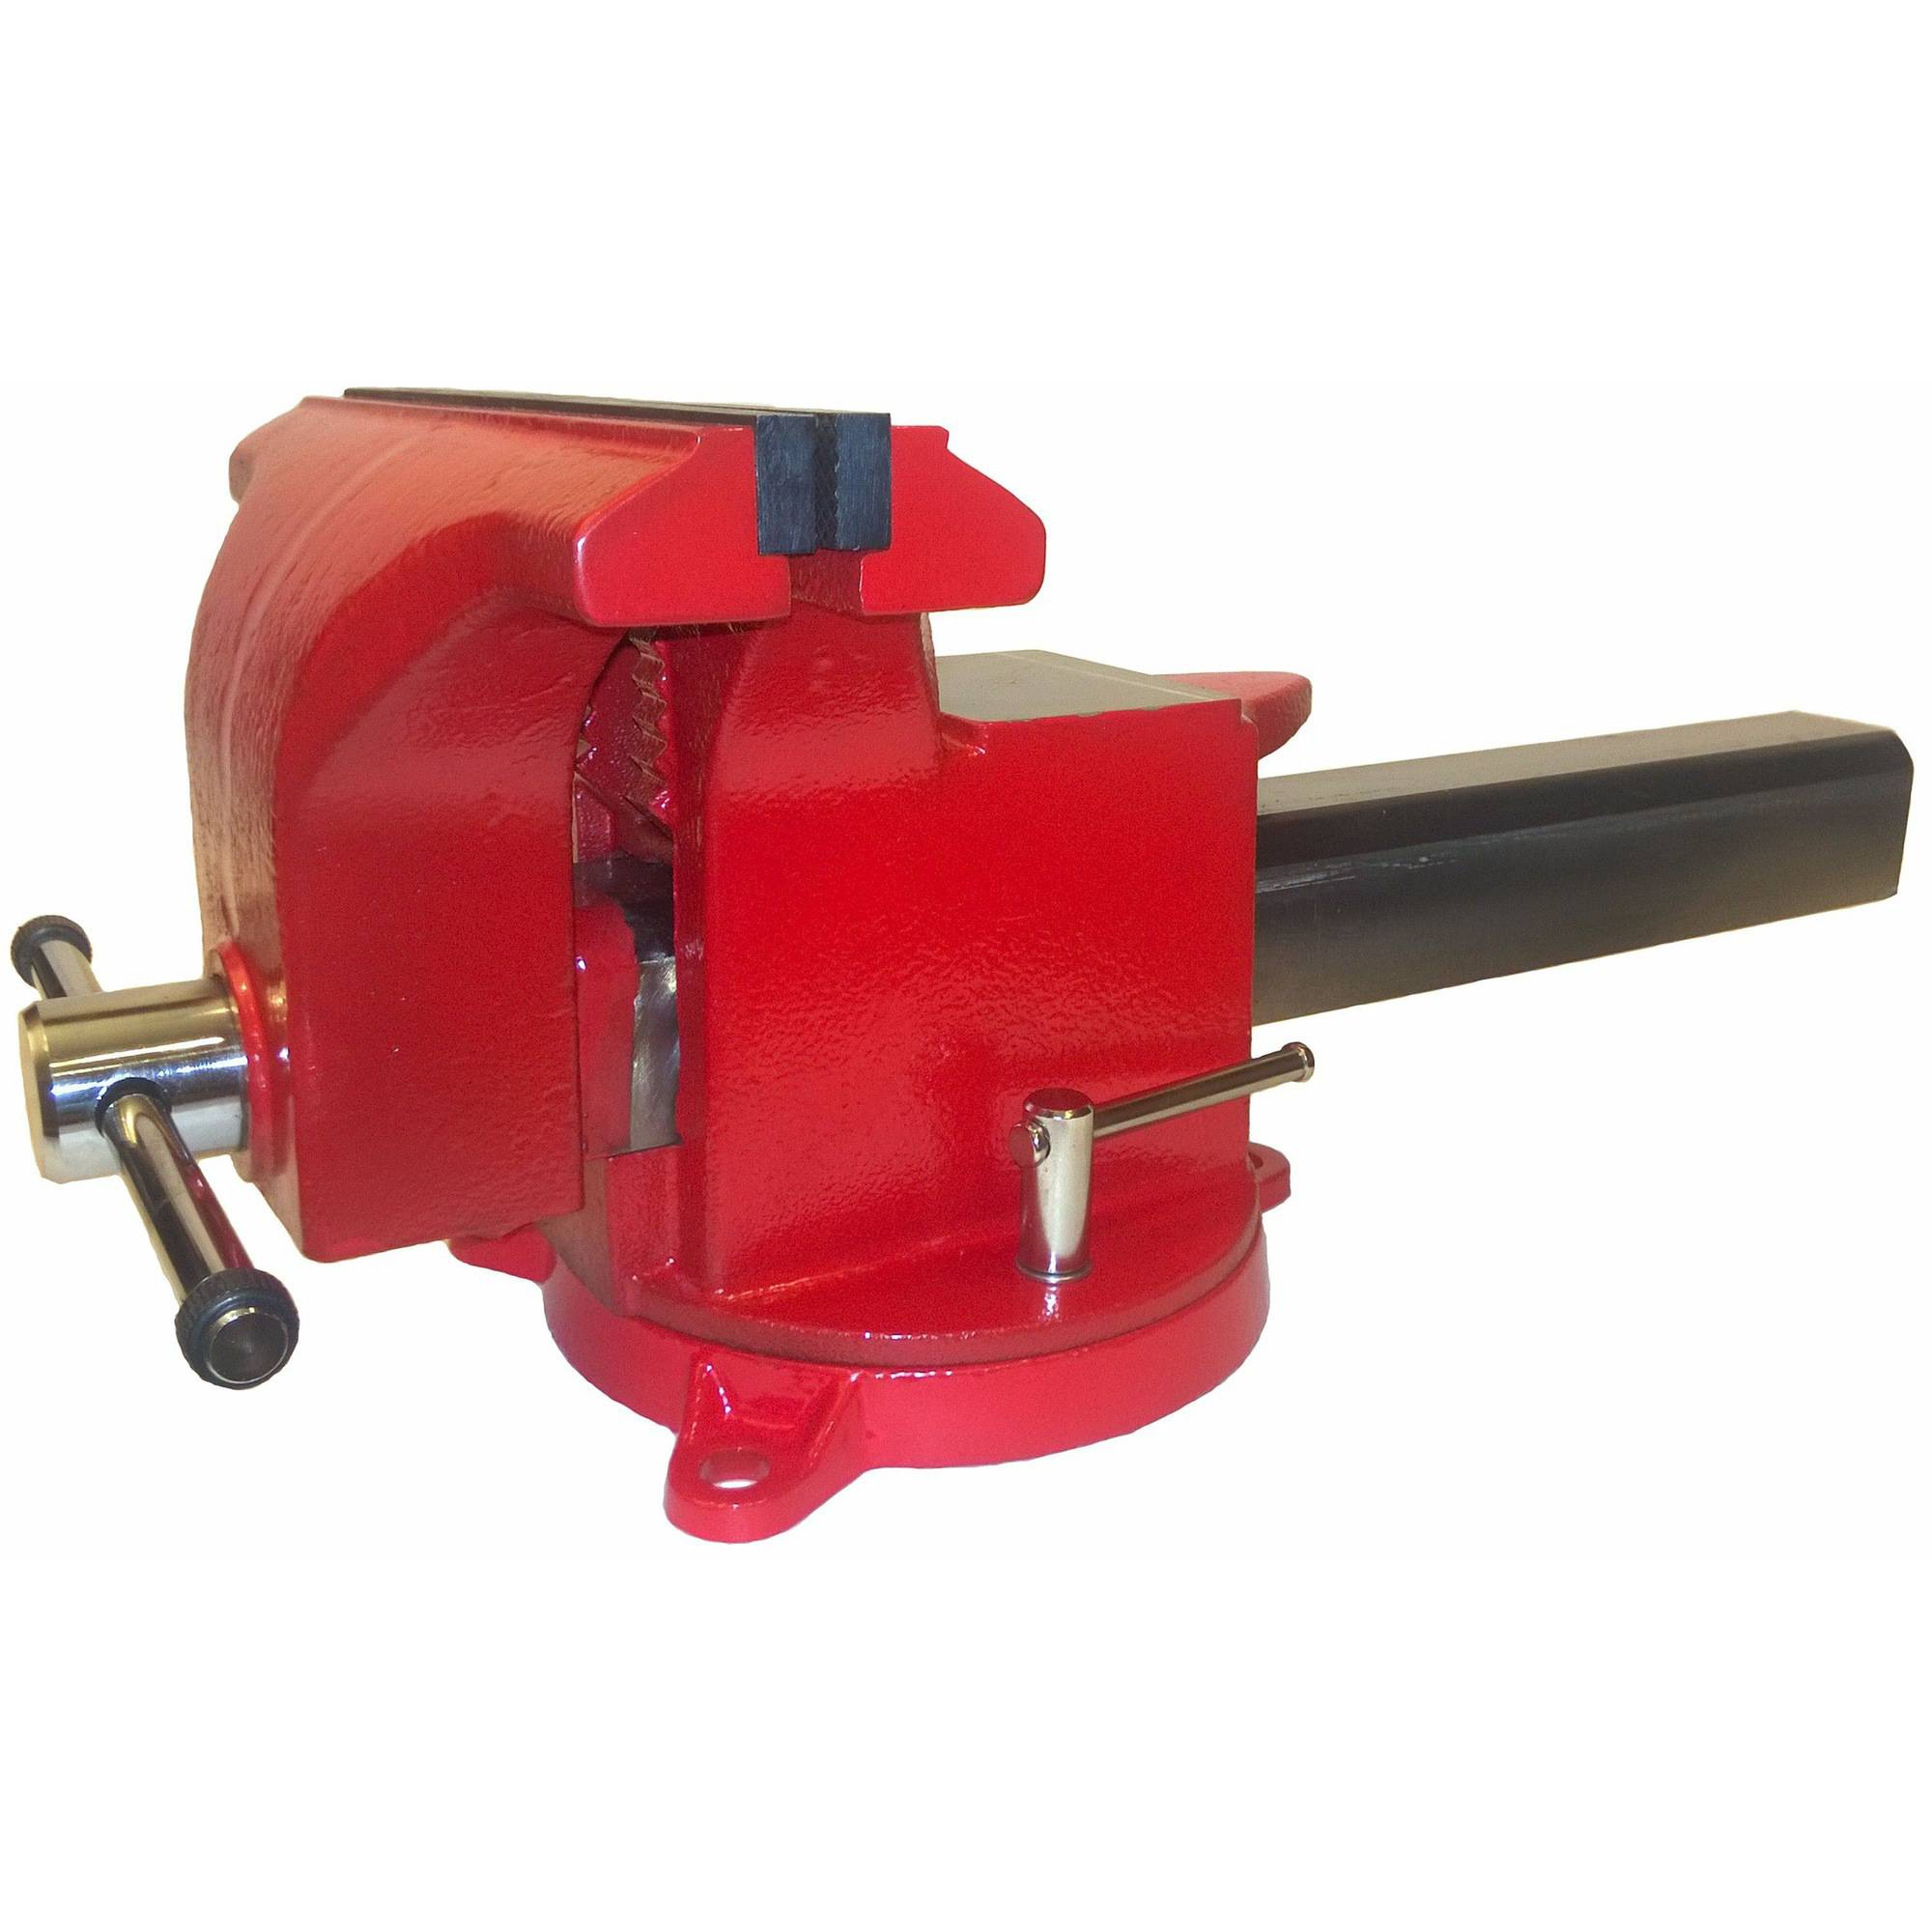 "Click here to buy Yost 918-As 18"" All Steel Bench Vise by Yost Vises."